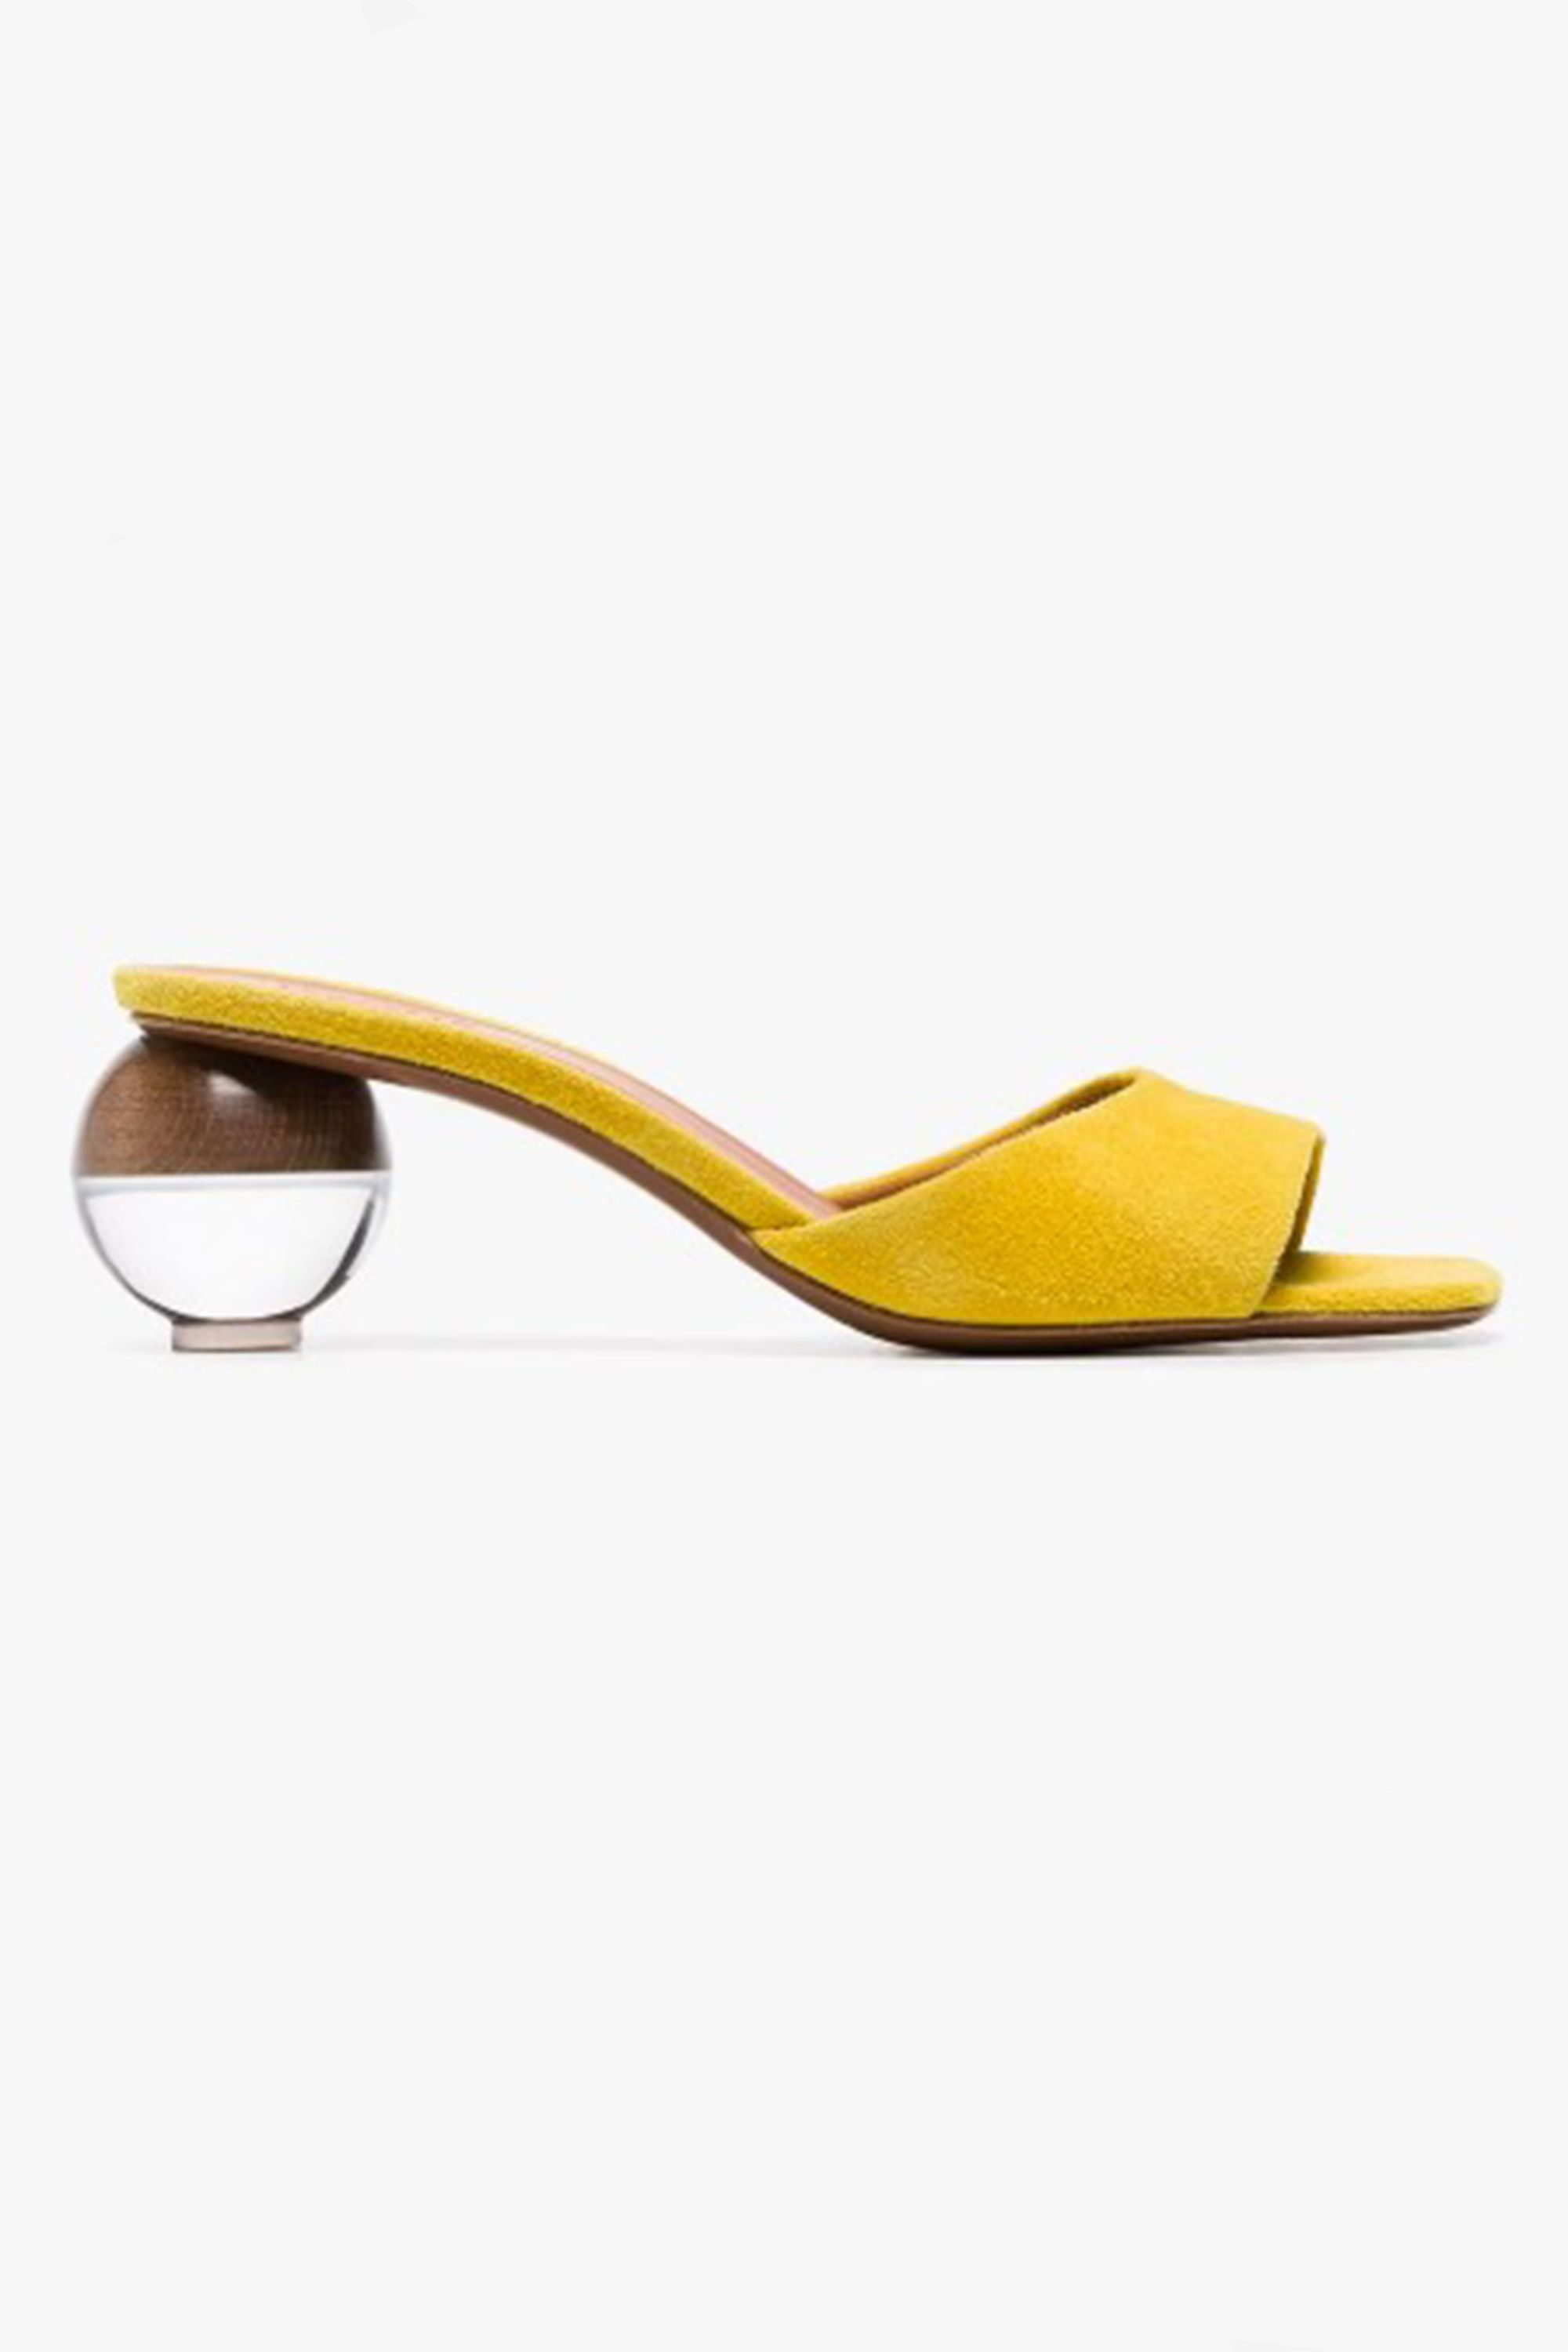 Neous shoe, sculptural heels